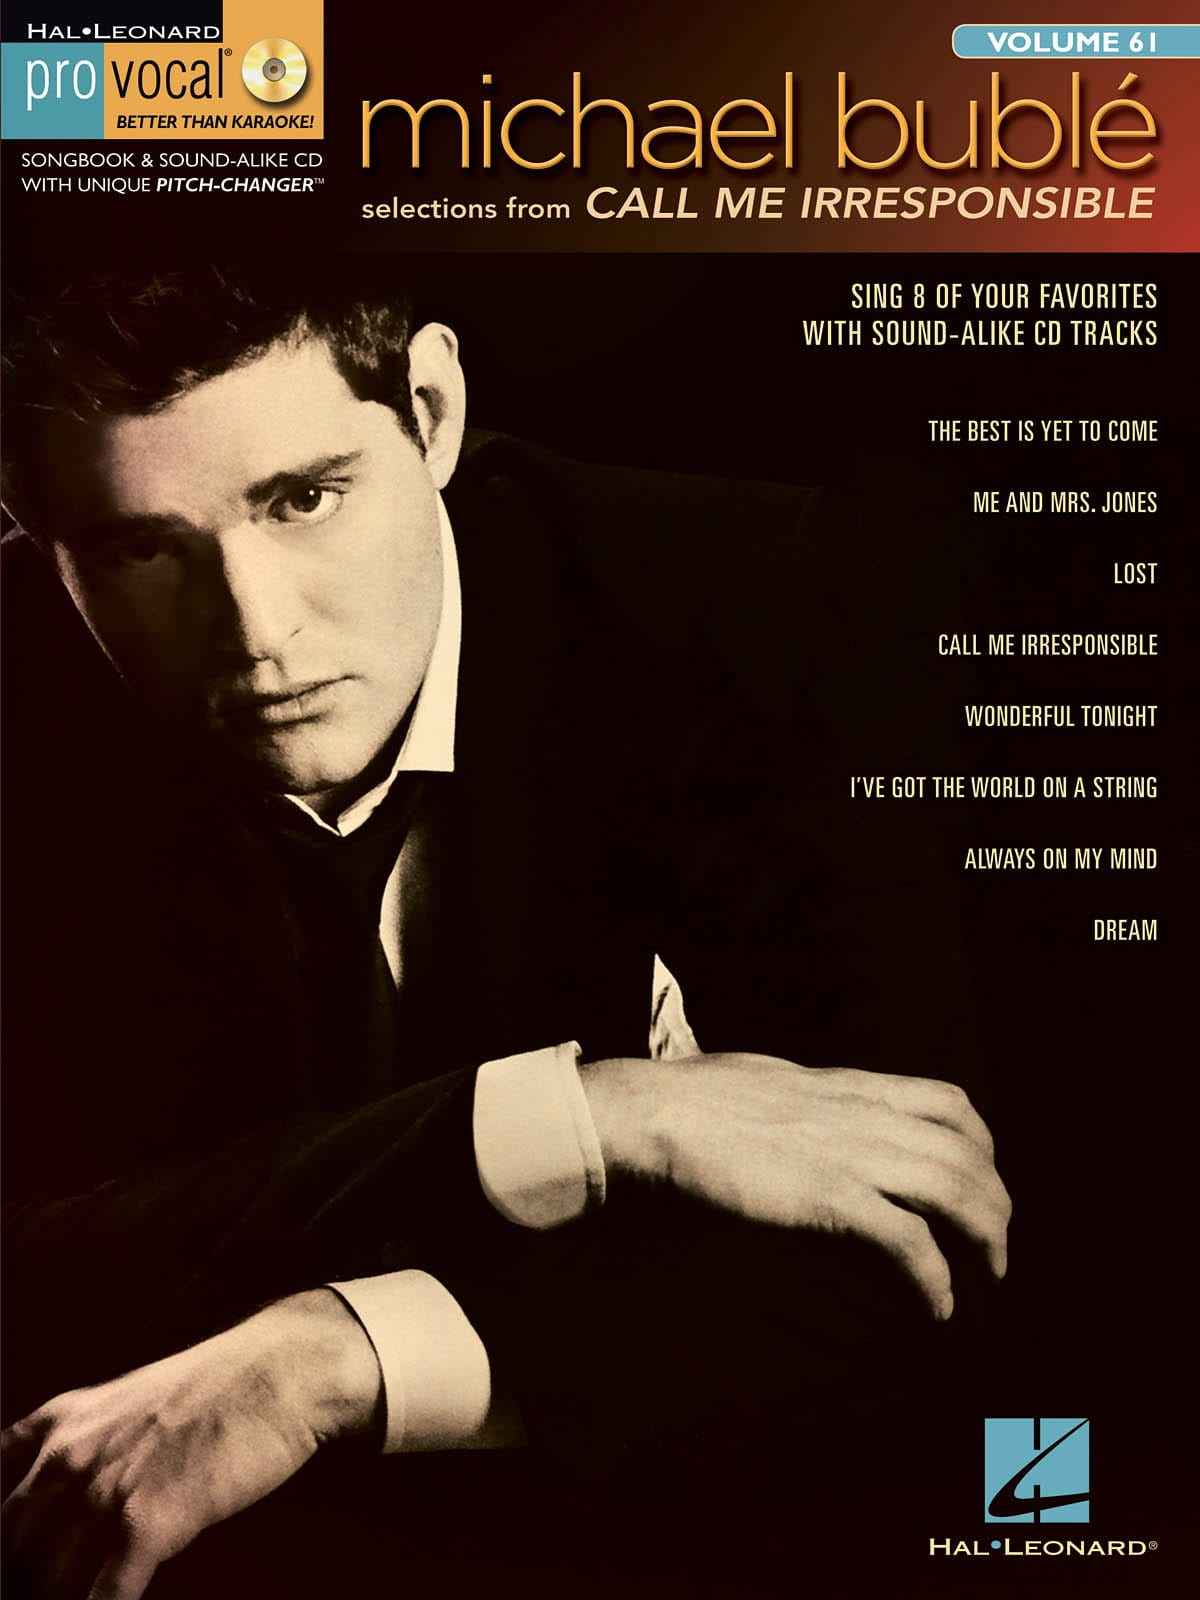 Michael Bublé - Pro Vocal Men's Edition Volume 61 - Michael Bublé - Call Me Irresponsible - Partition - di-arezzo.co.uk